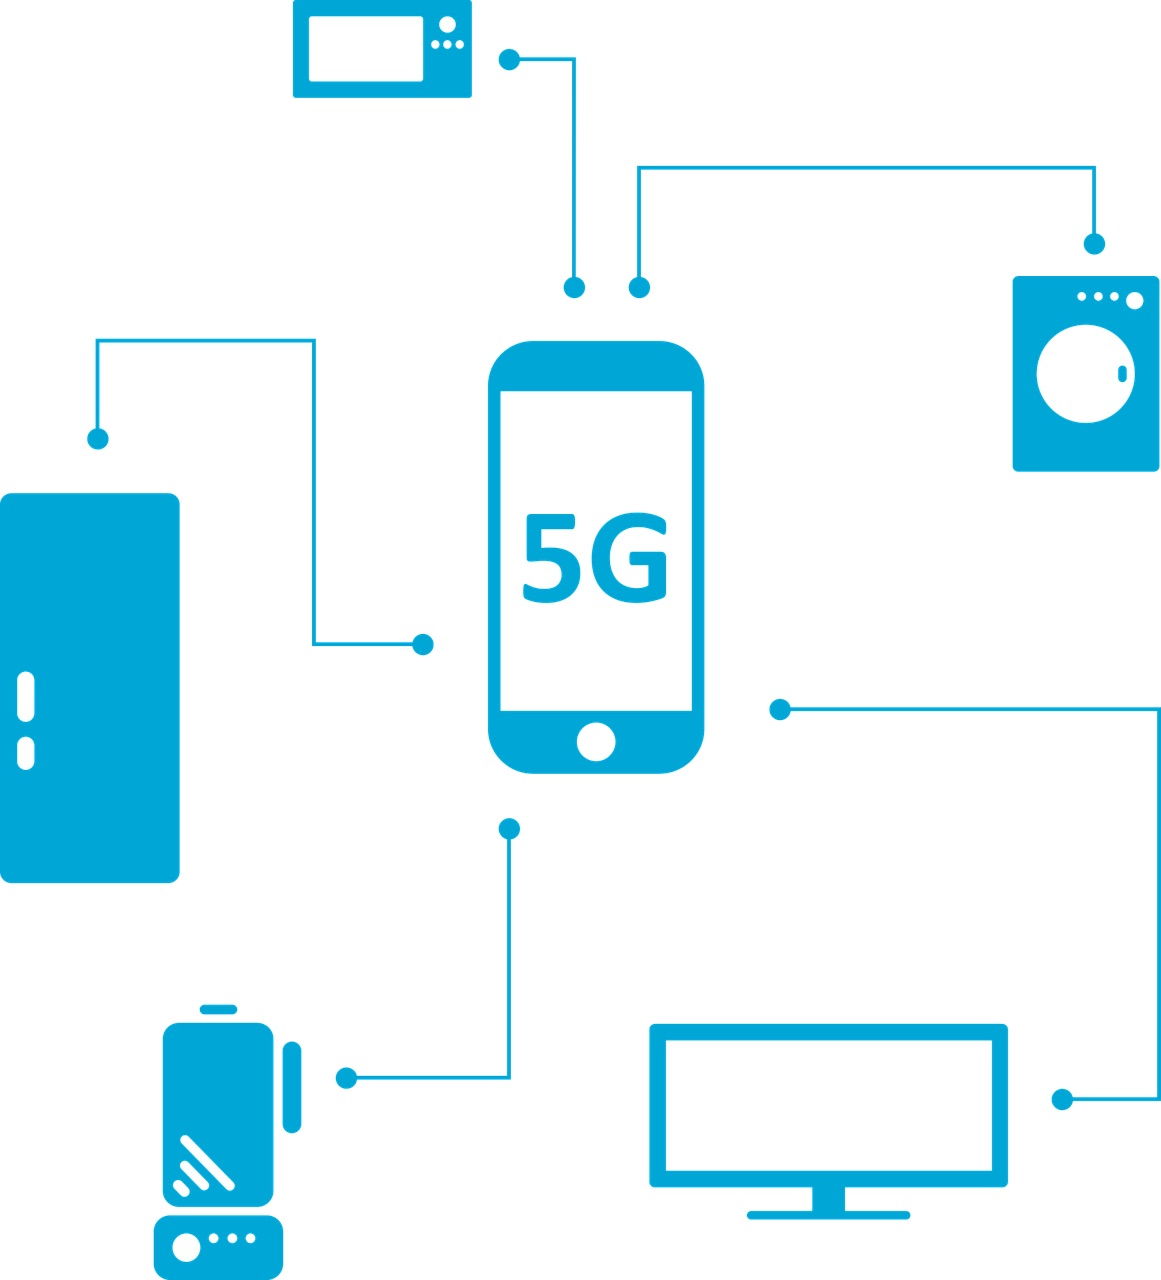 Telcel adds more spectrum in 5G band